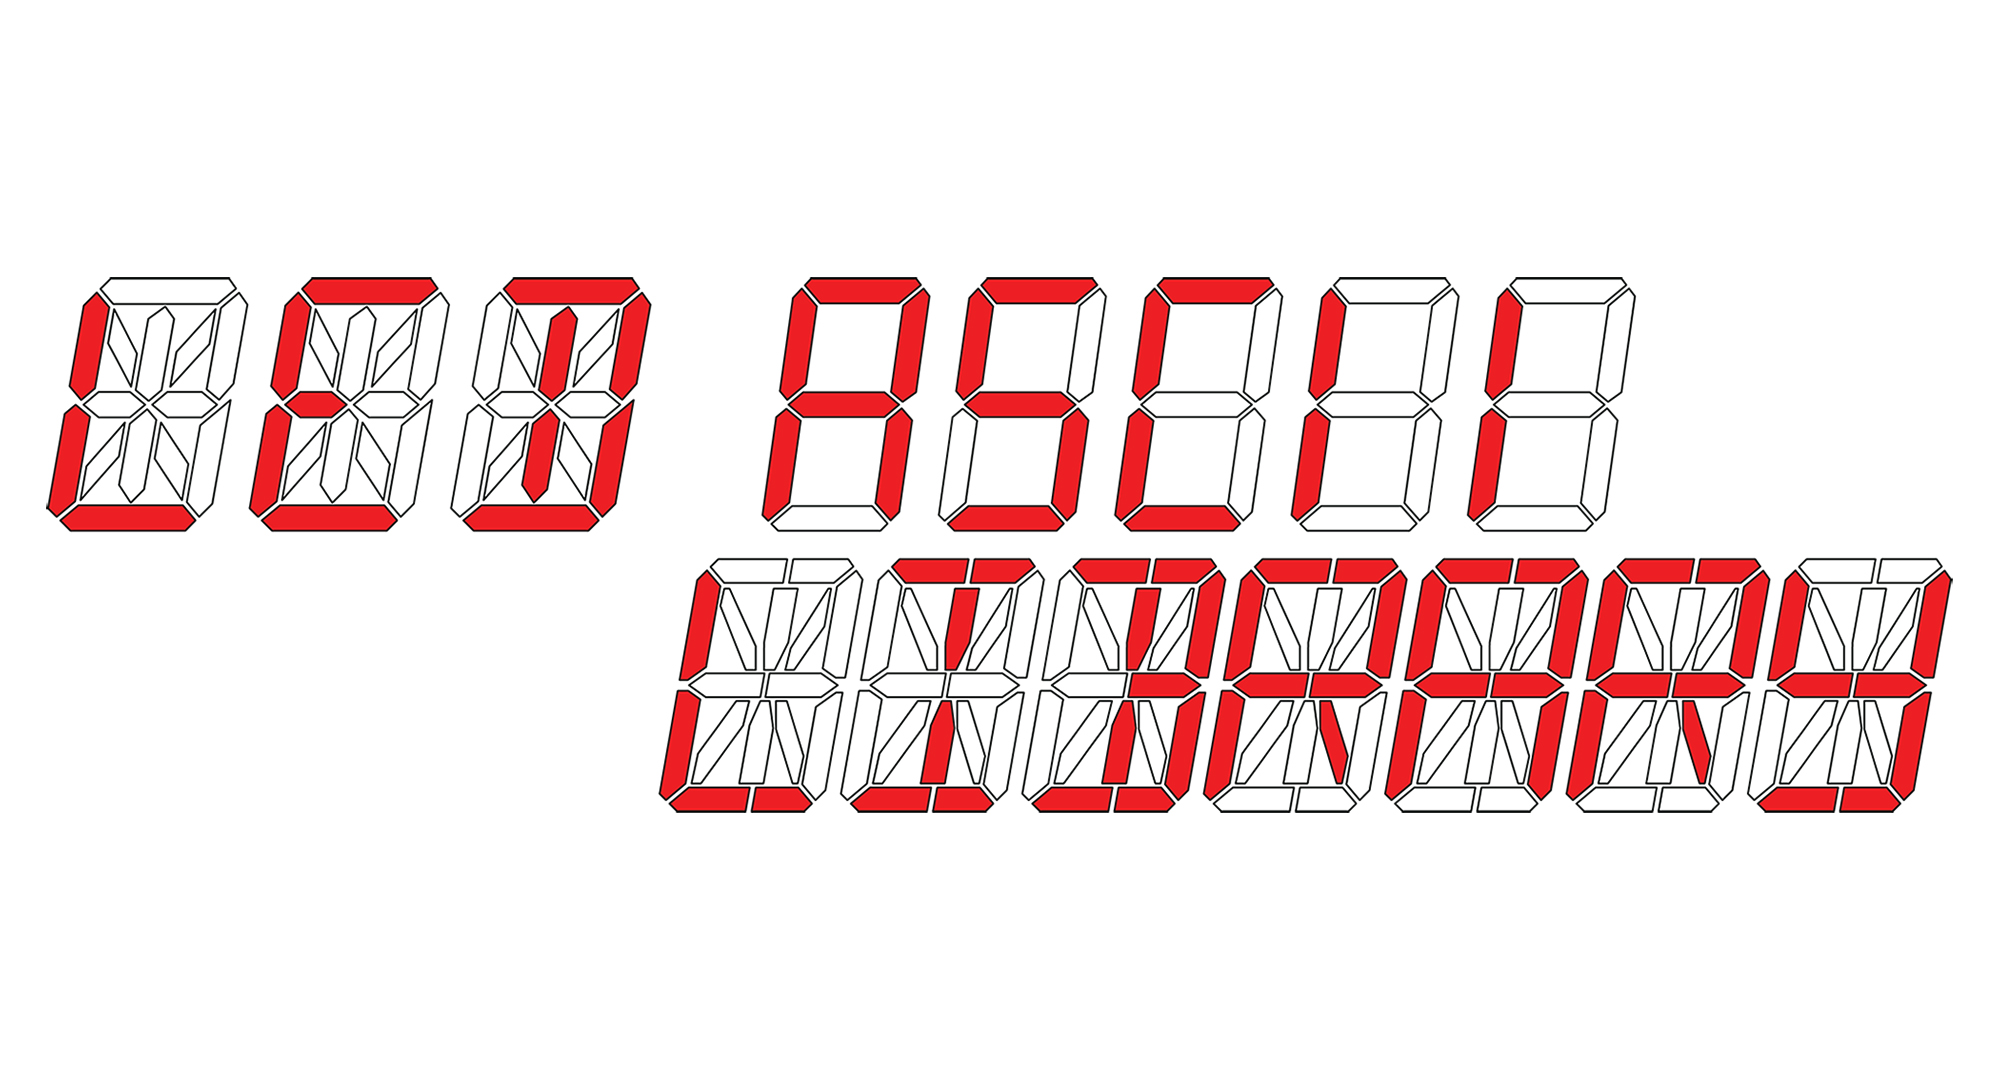 Segmented Led Display Ascii Library Parts Not Included